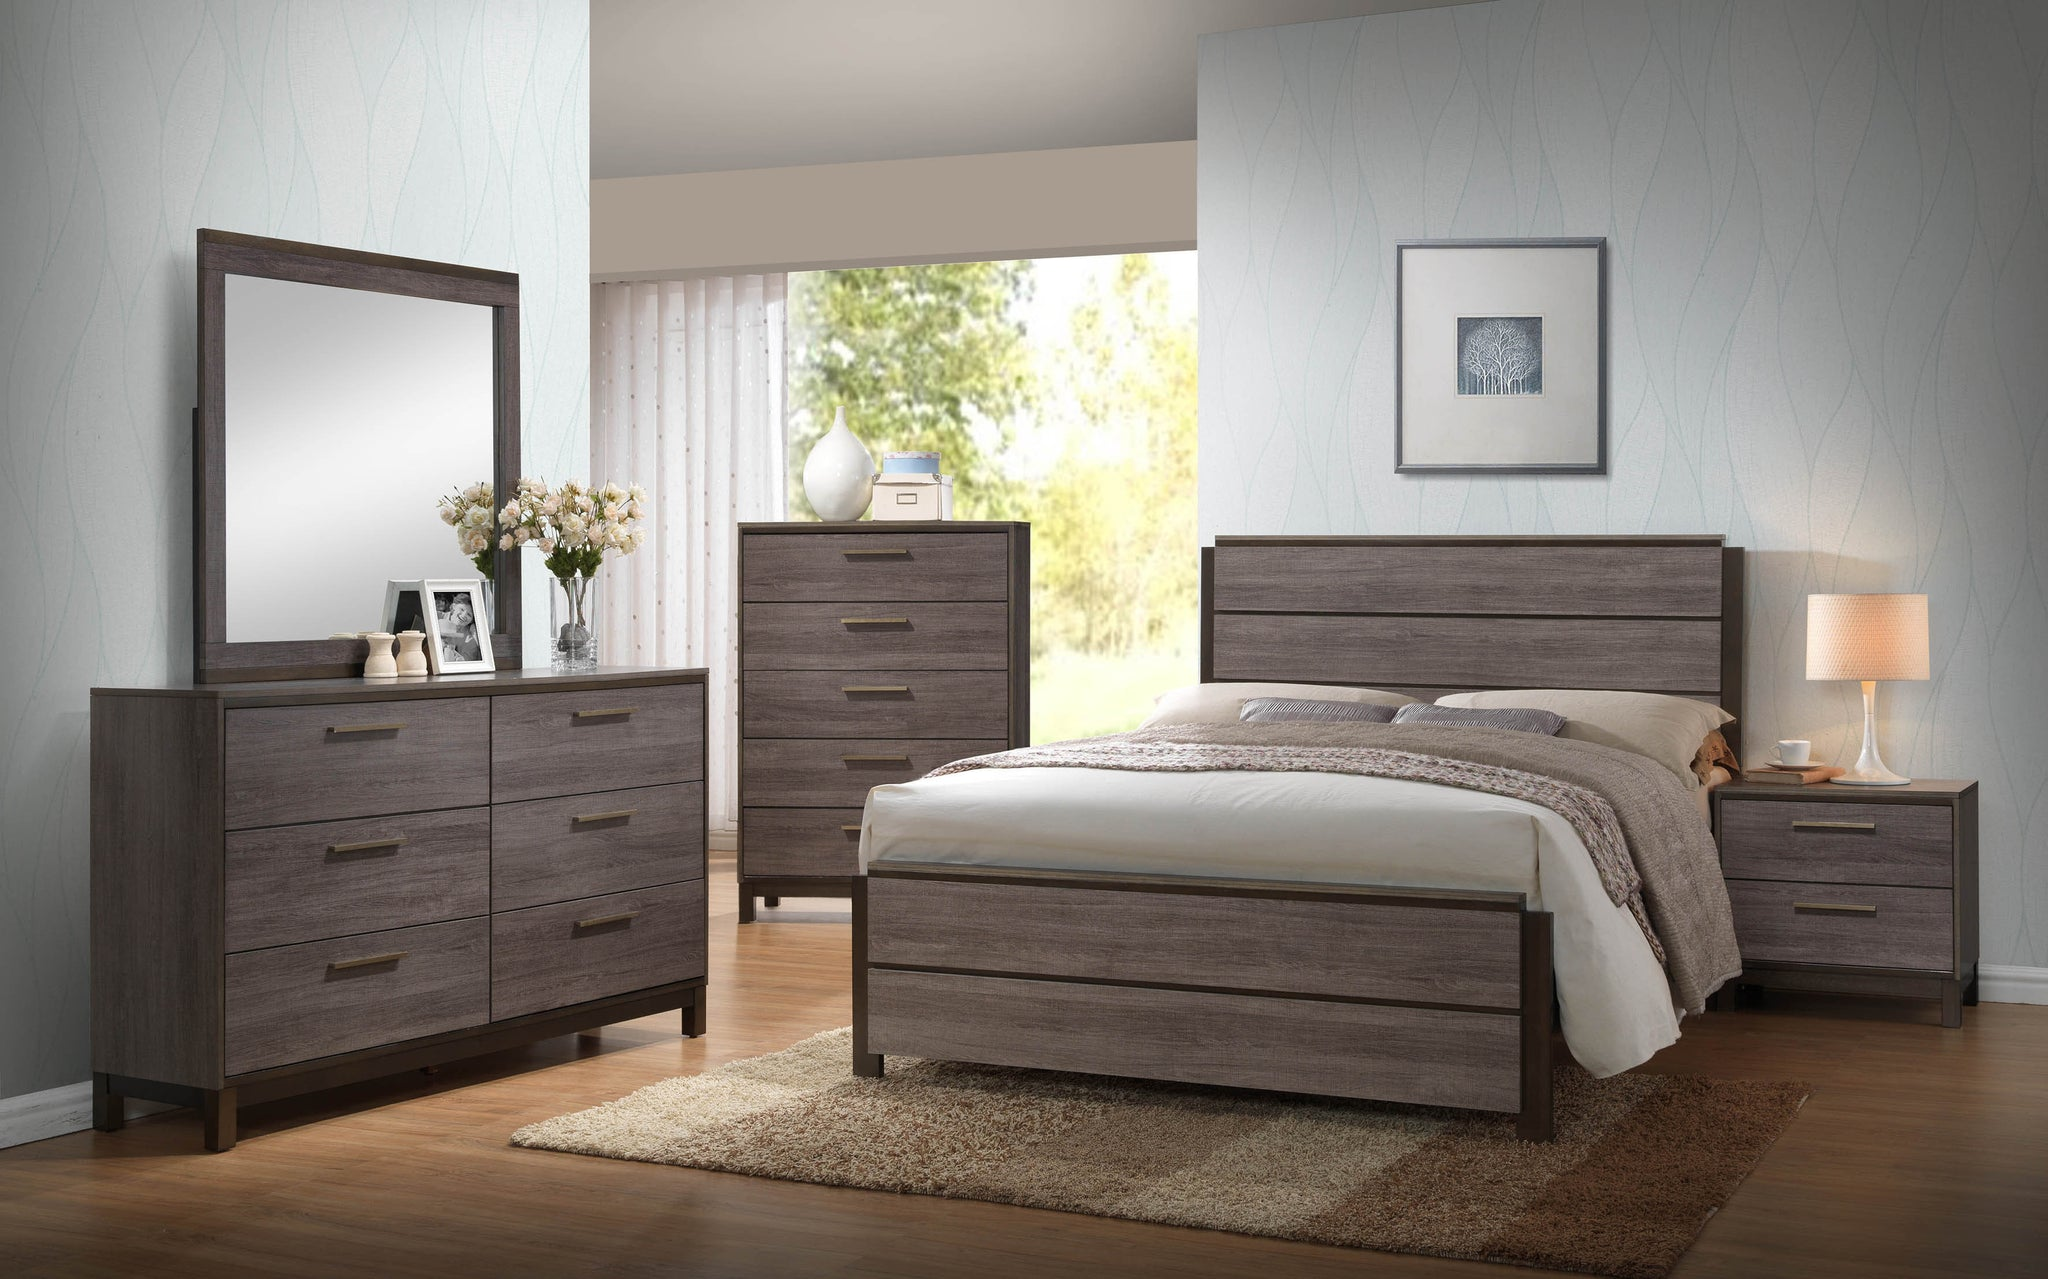 Lovely Gray Wood Bedroom Furniture Pics Kamsuy News